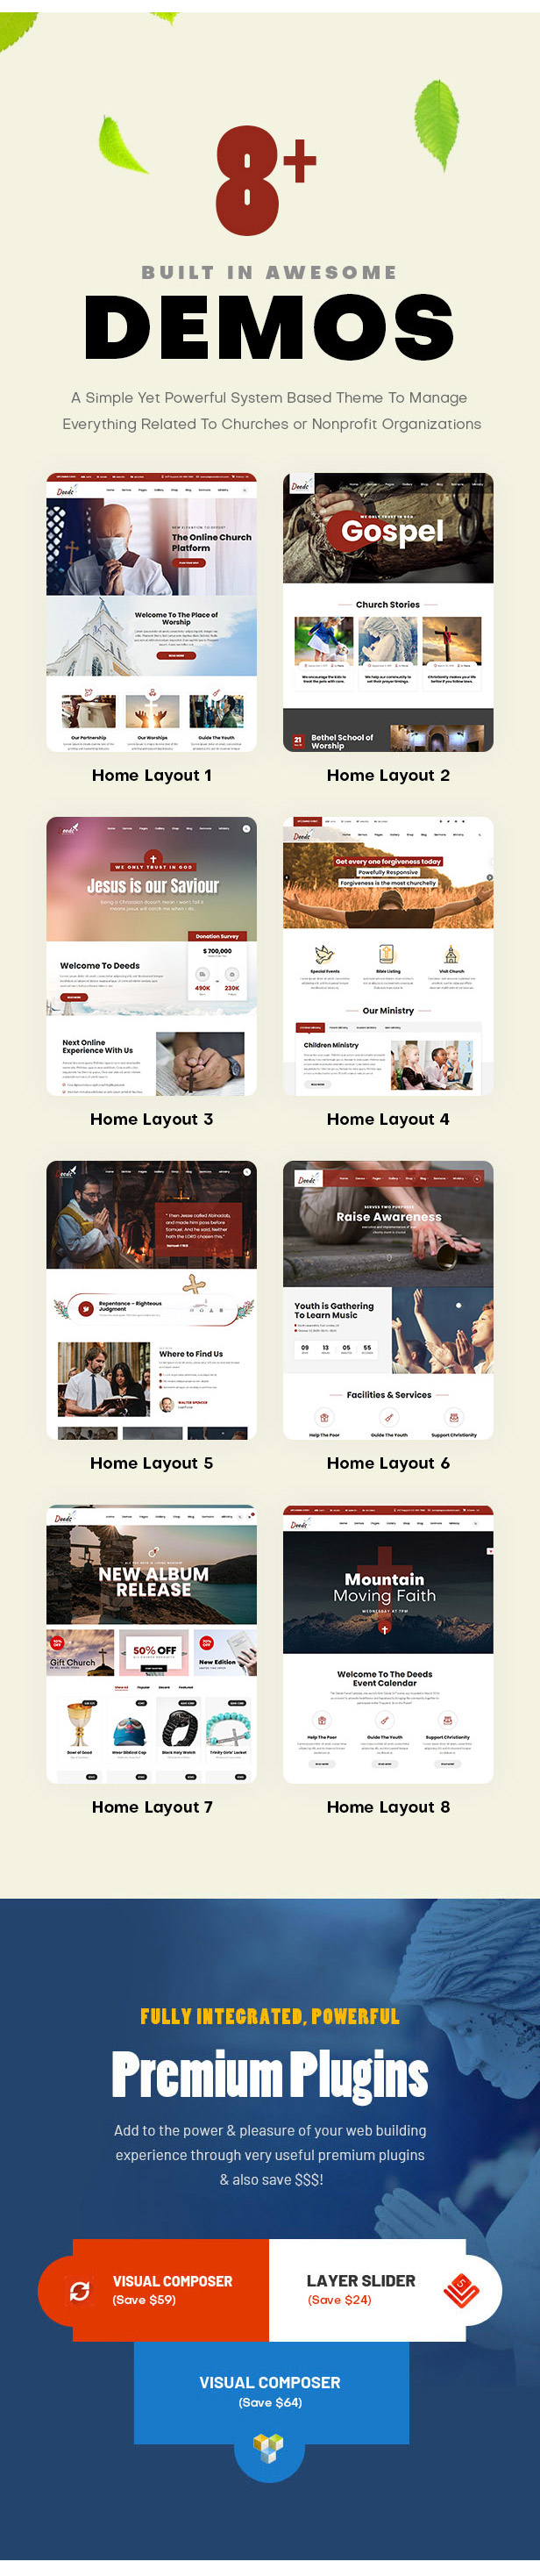 Deeds - Best Responsive Nonprofit Church WordPress Theme - 2